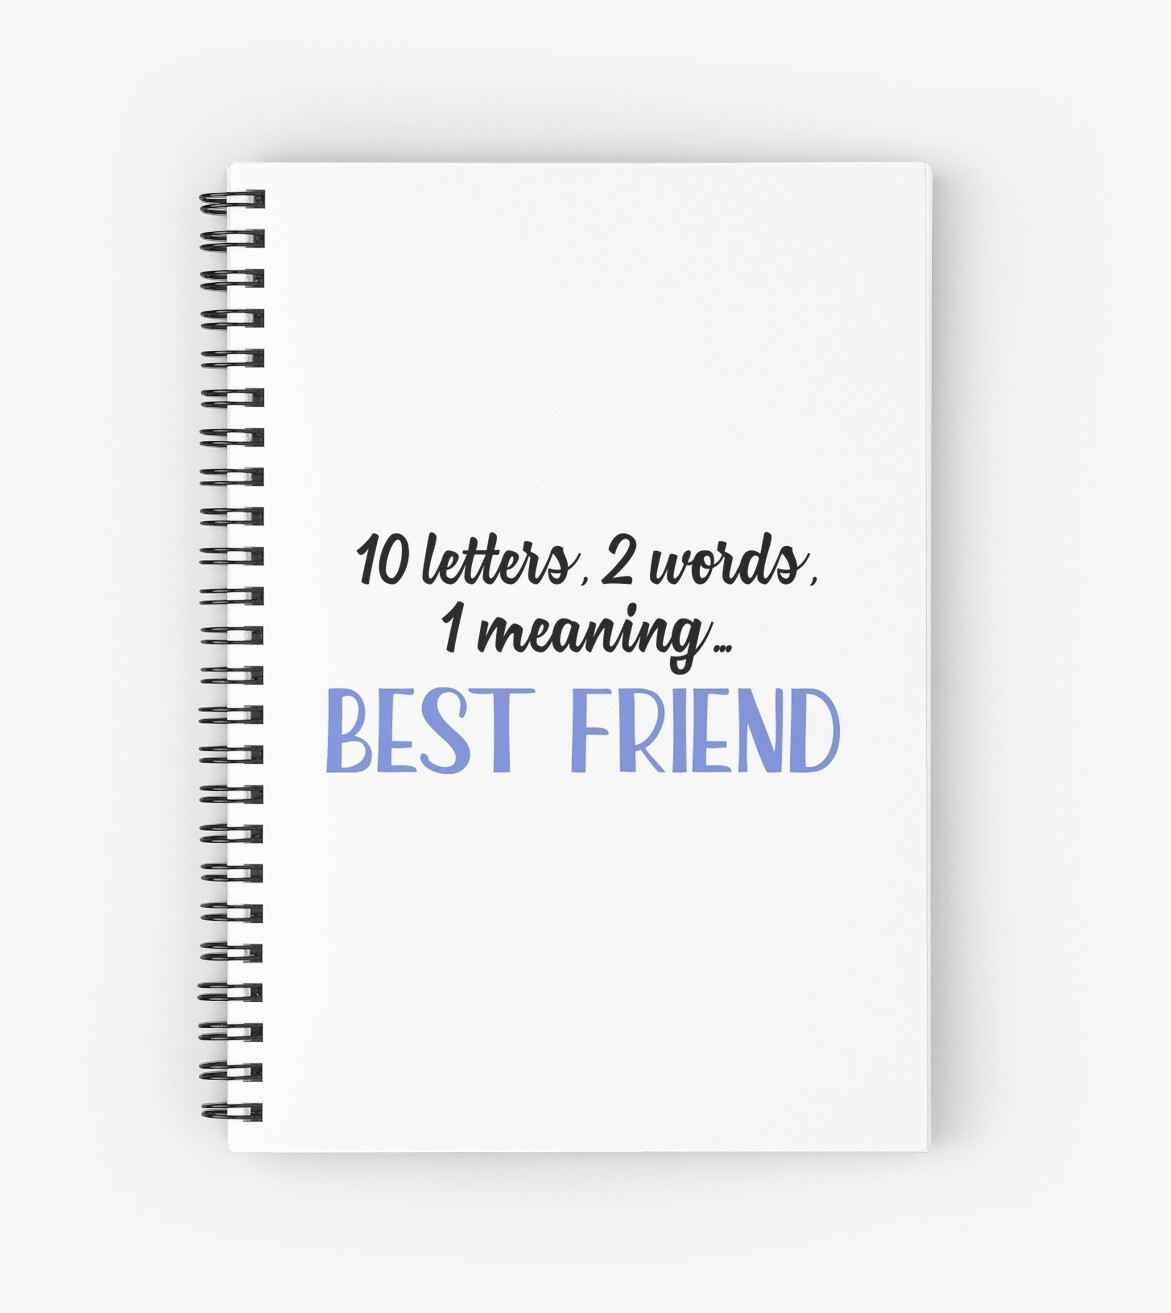 best friend 10 letters 2 words 1 meaning spiral notebooks by